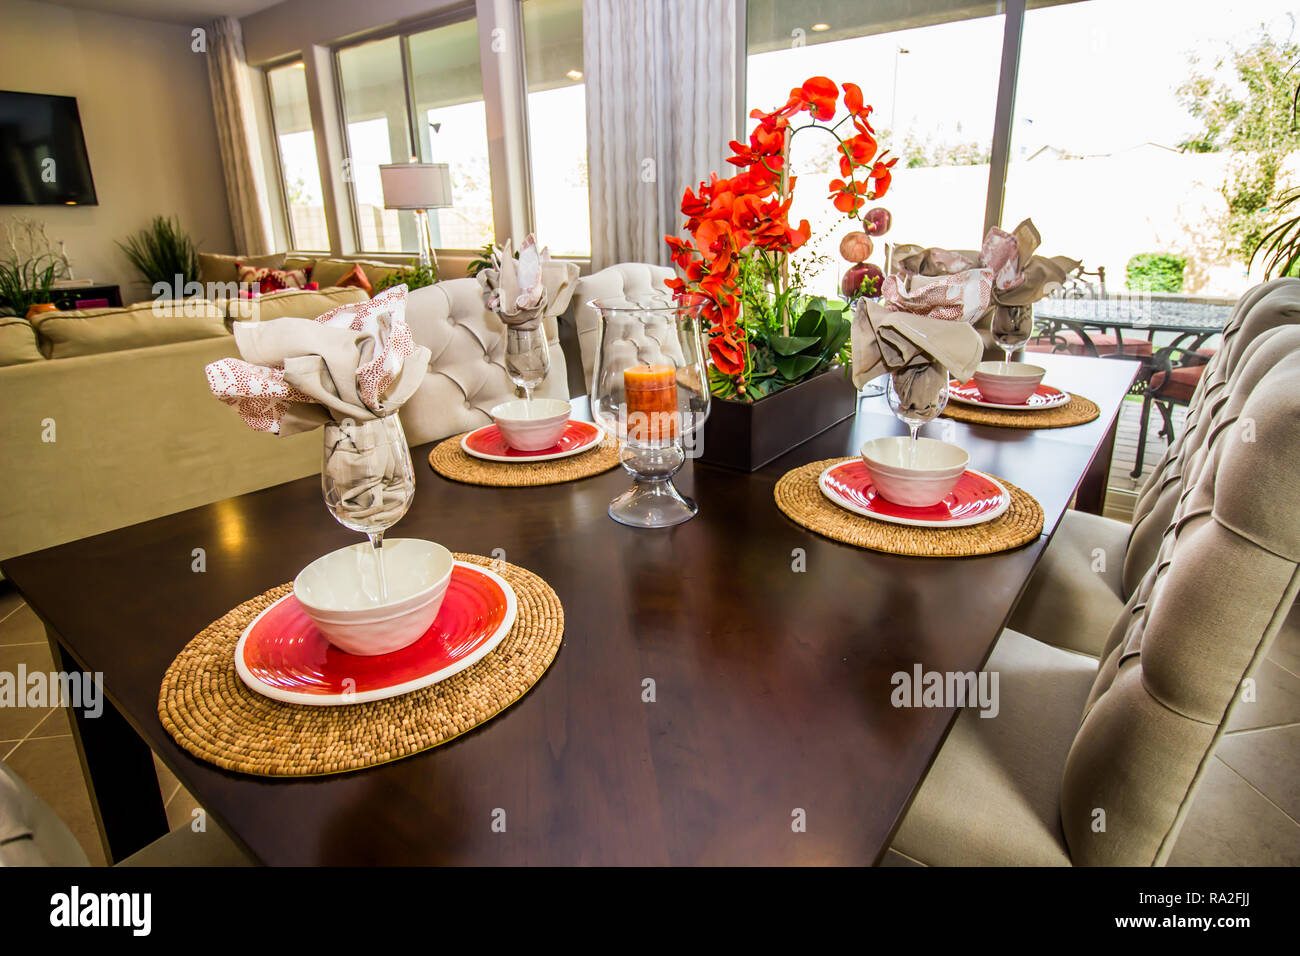 Modern Wooden Table With Chairs And Six Place Settings - Stock Image